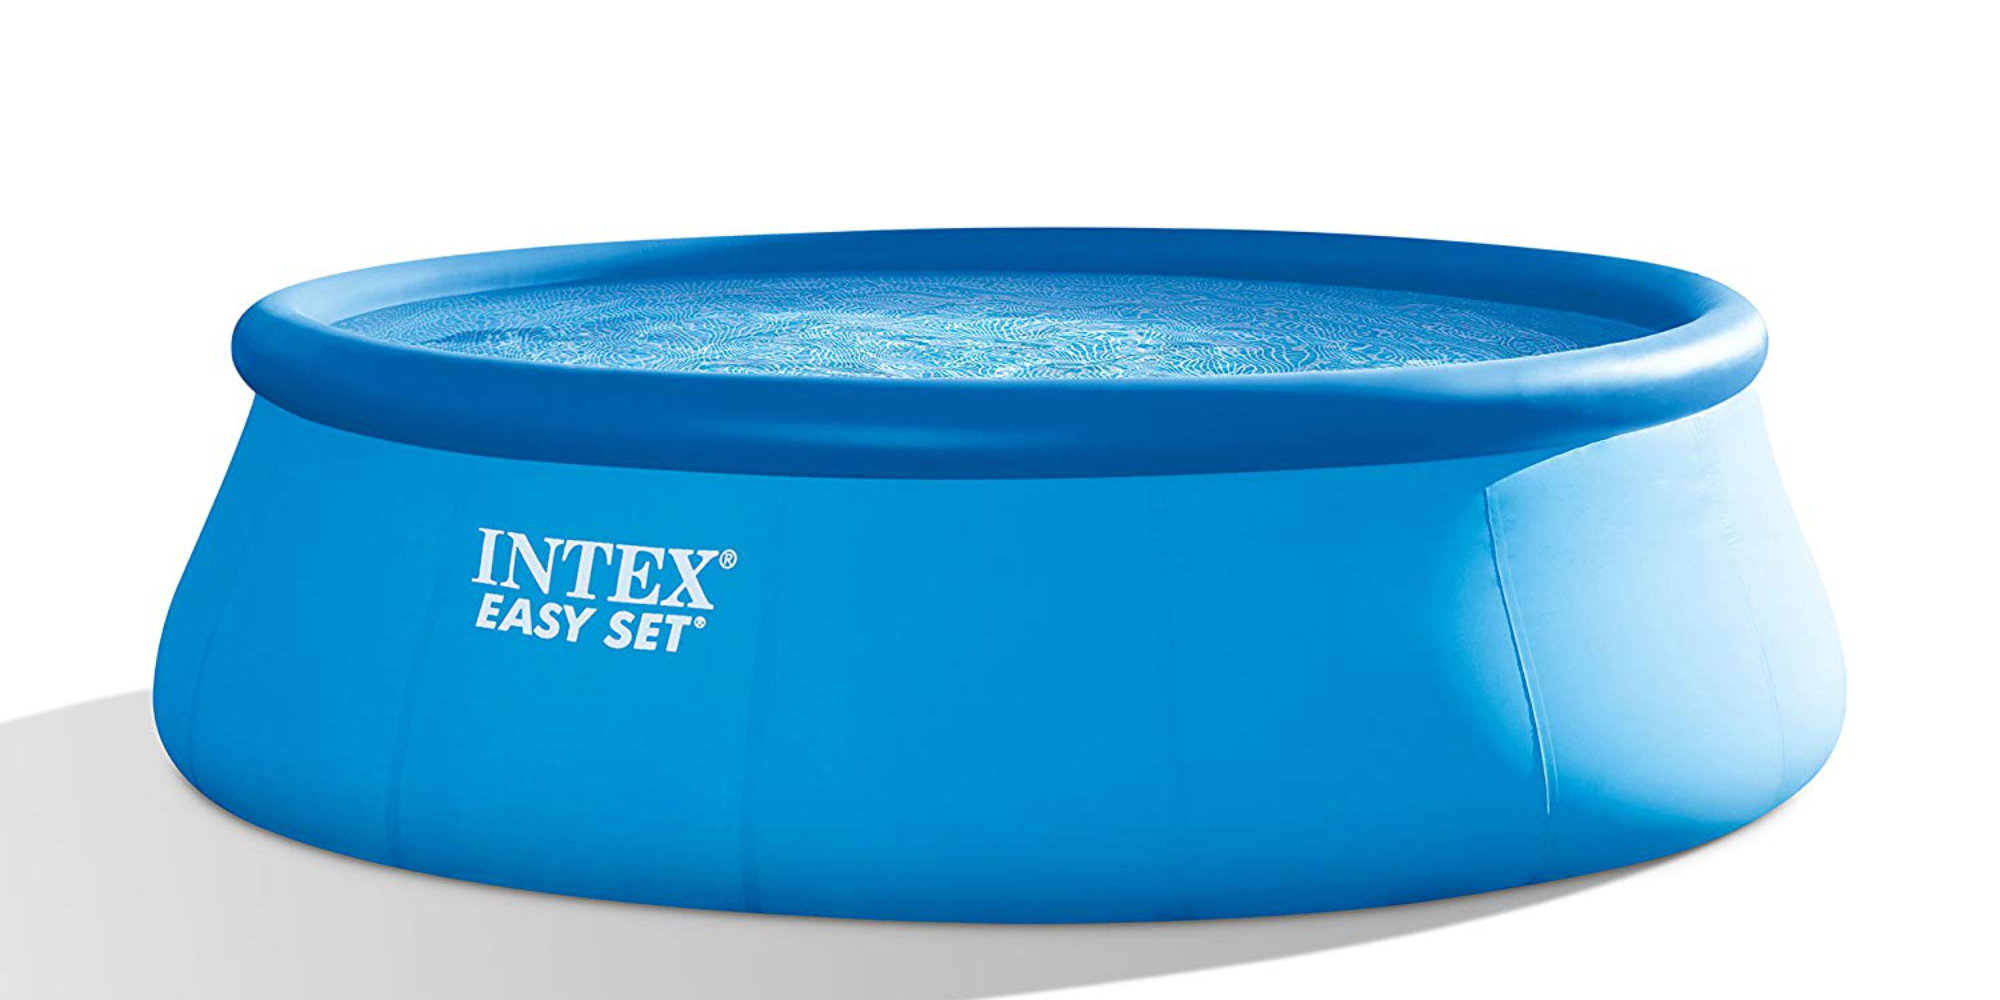 Filterpumpe Pool Amazon Make A Splash This Summer W An Intex 18 Ft X 4 Ft Easy Pool Set